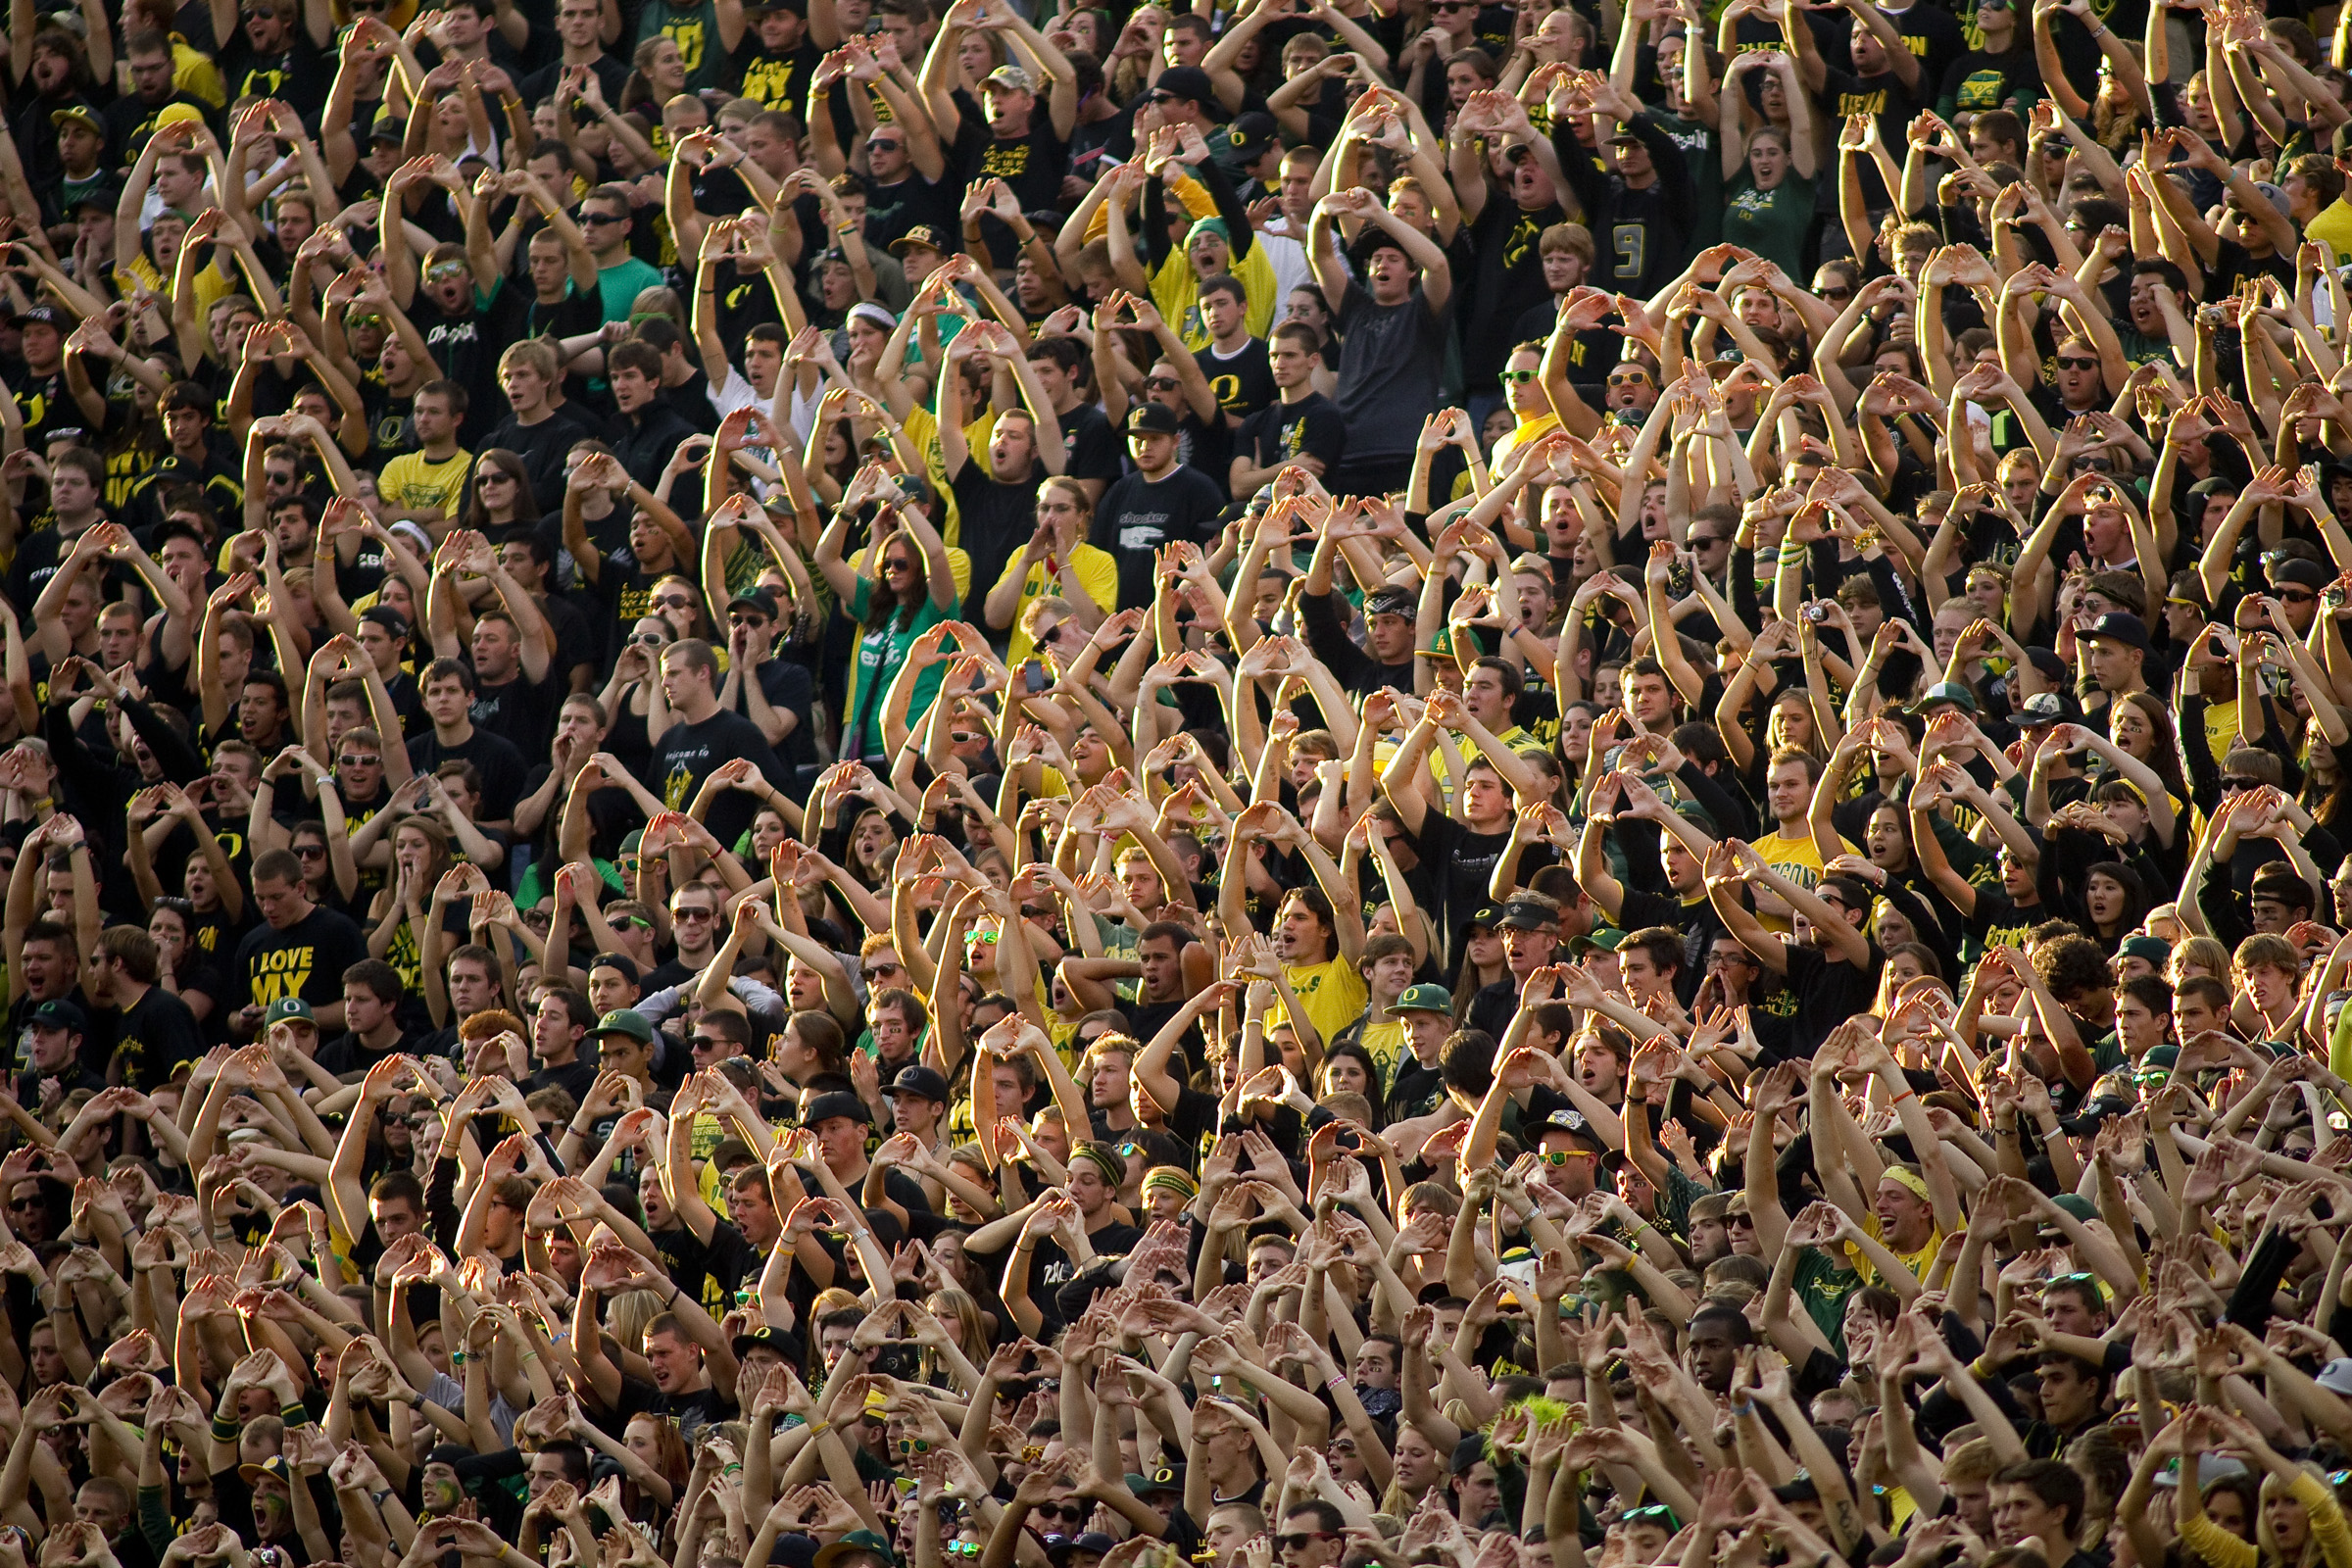 10/02/2010 - Oregon fans cheer on the Ducks against Stanford Saturday at Autzen Stadium in Eugene.